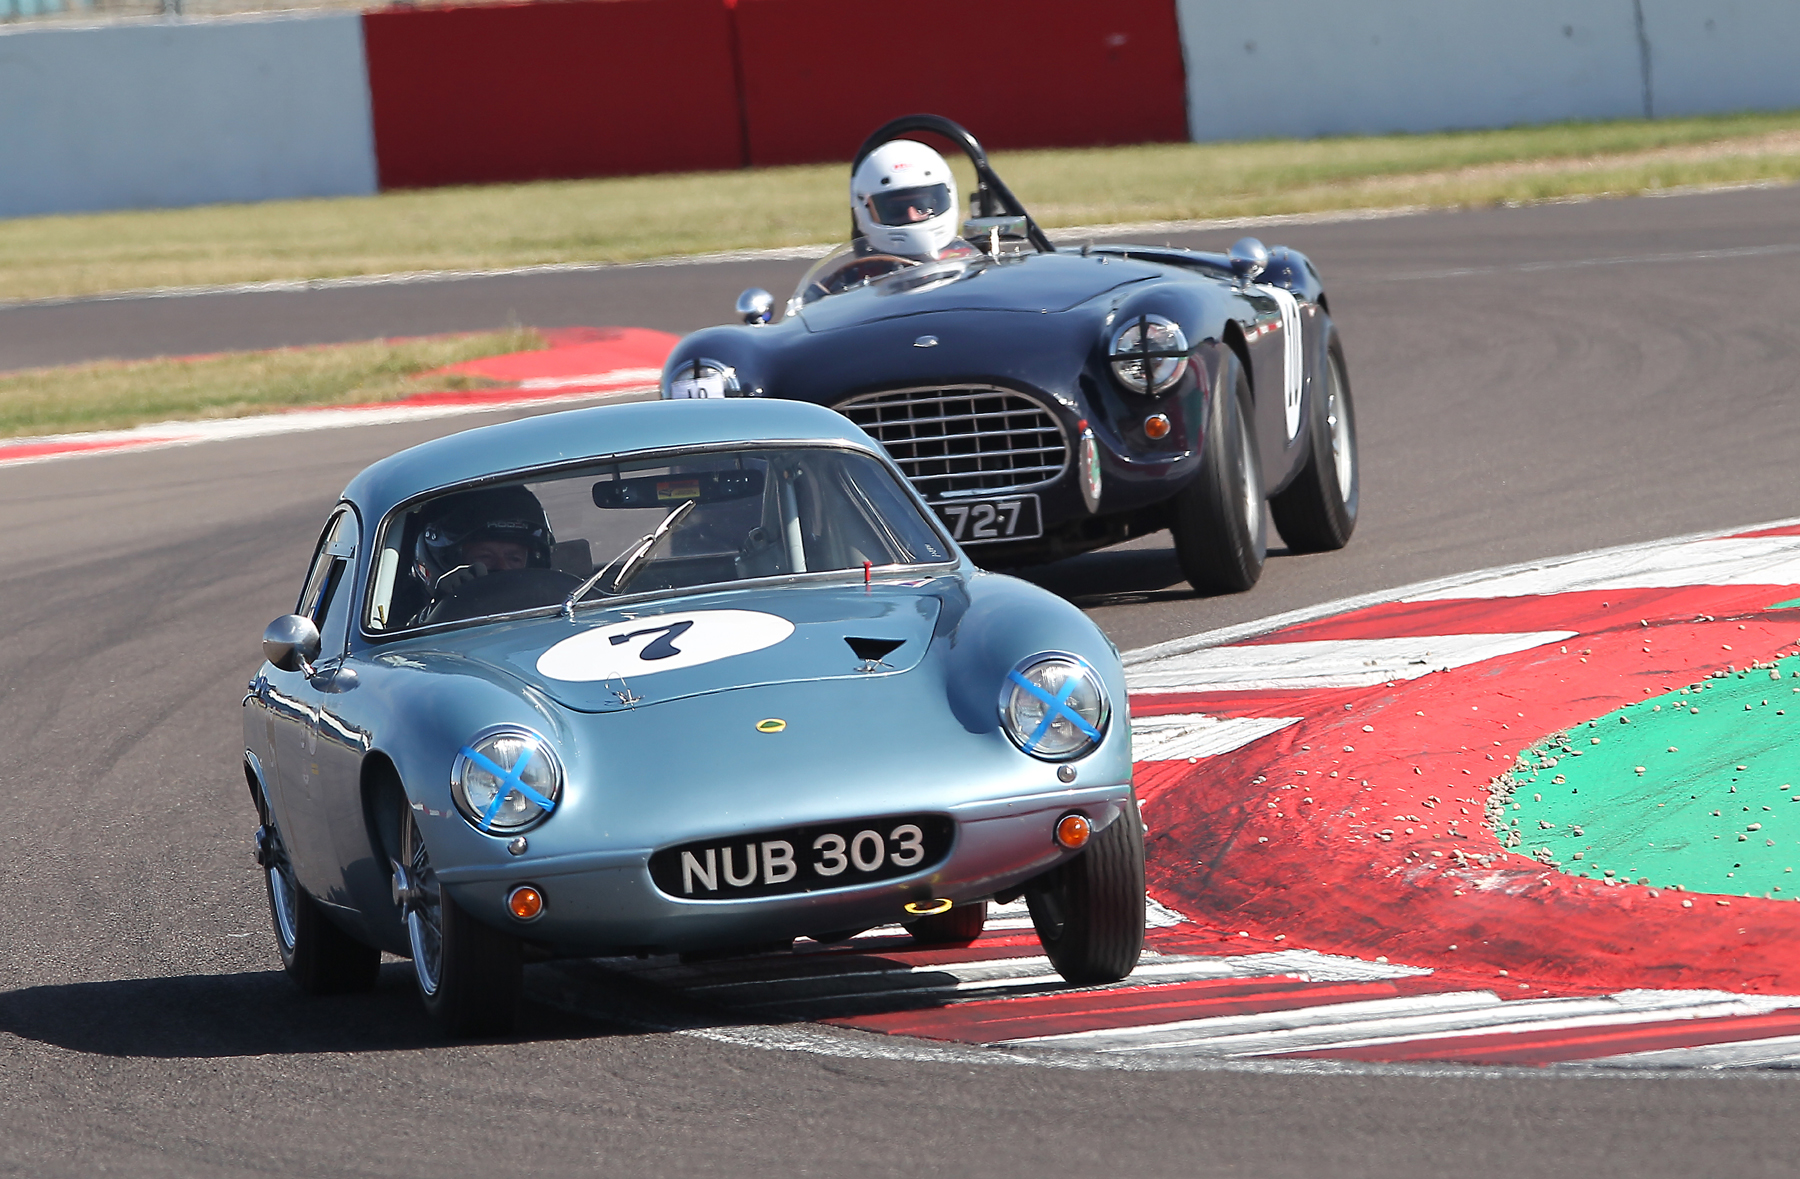 Brian Arculus took FISCAR honours at Donington in a mixed grid of cars, finishing 7th overall. Here, he is followed by Justin Becket in his AC Ace Bristol  Photo - Mick Walker